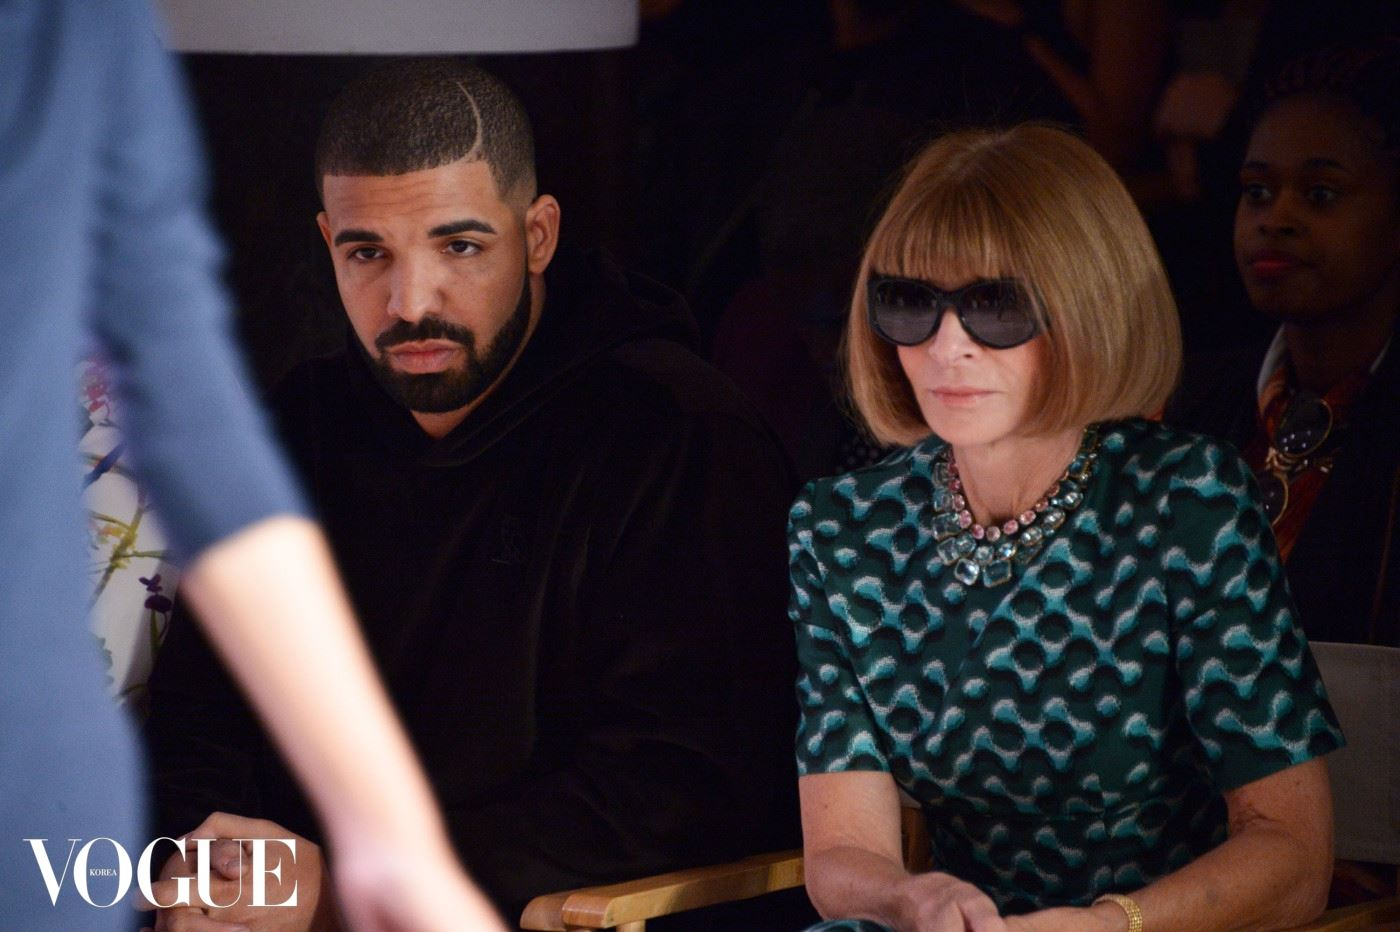 NEW YORK, NY - SEPTEMBER 15: Drake and Anna Wintour attend the Serena Williams Signature Statement by HSN  show during Spring 2016 Style360 on September 15, 2015 in New York City.  (Photo by Grant Lamos IV/Getty Images)